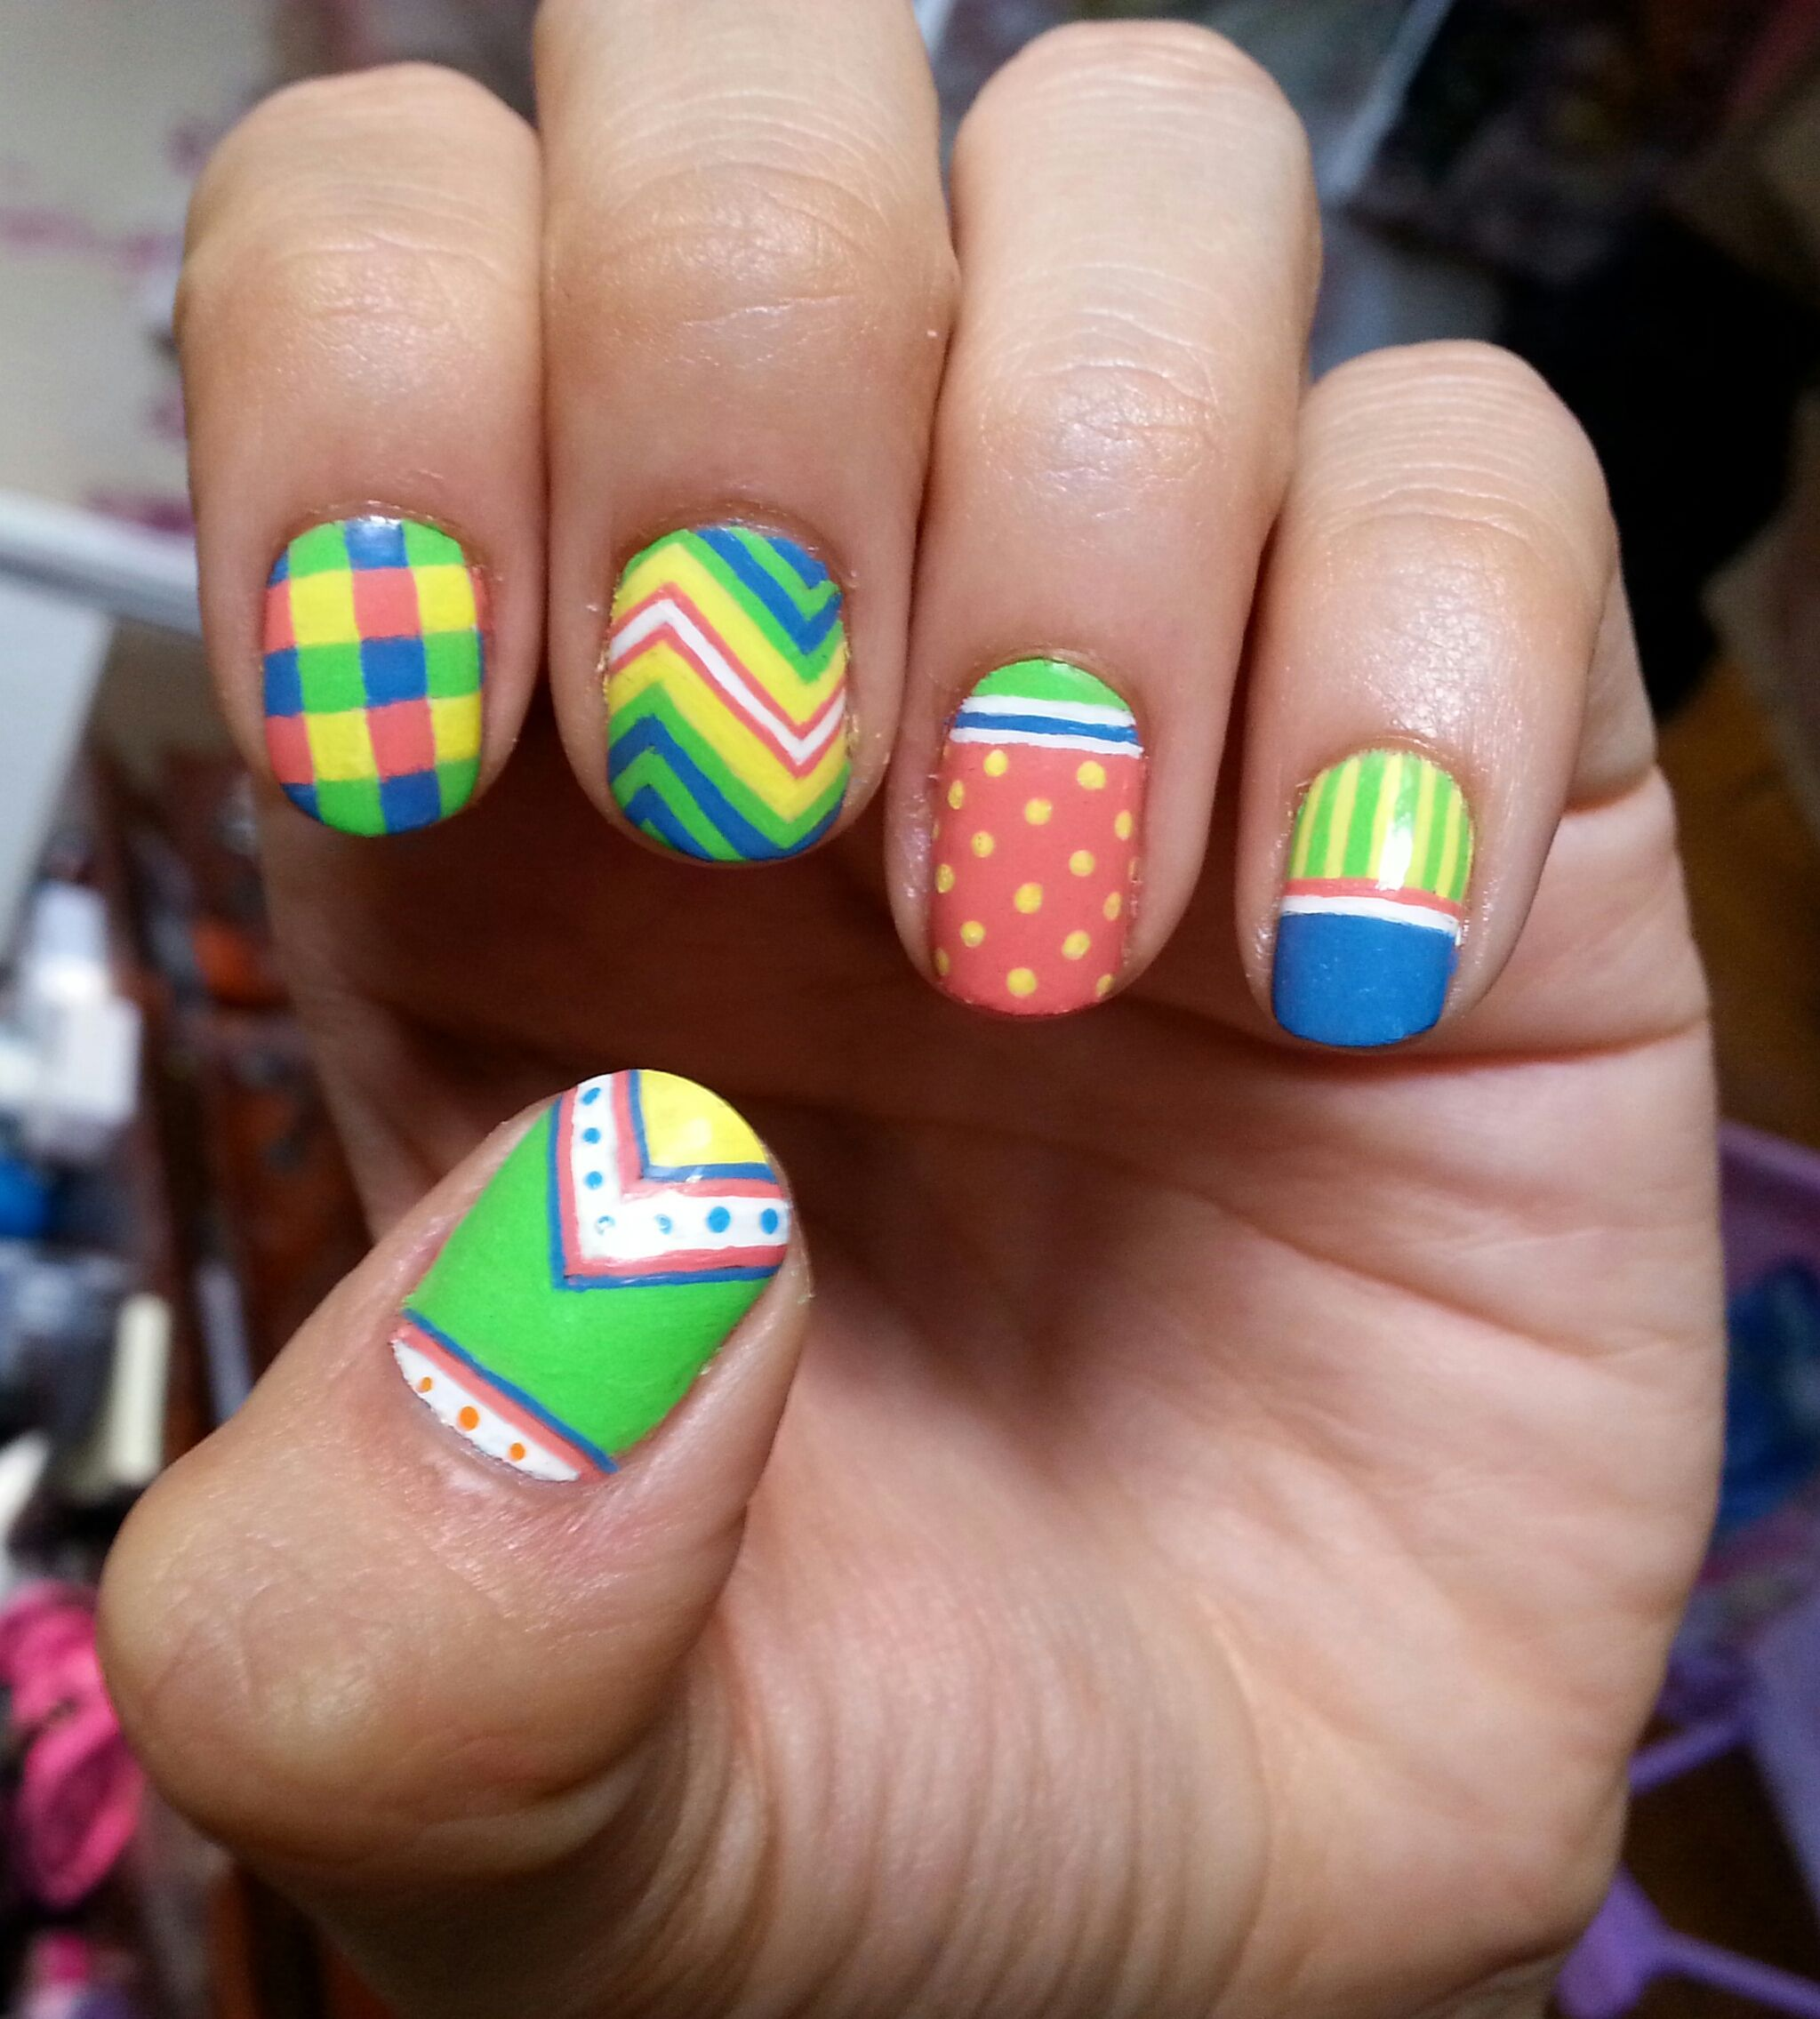 Vote for my nail art submission on Rite Aid's Nail Extravaganza! Just click on this image to go to the voting page. Thank you! #nailart #riteaidnails